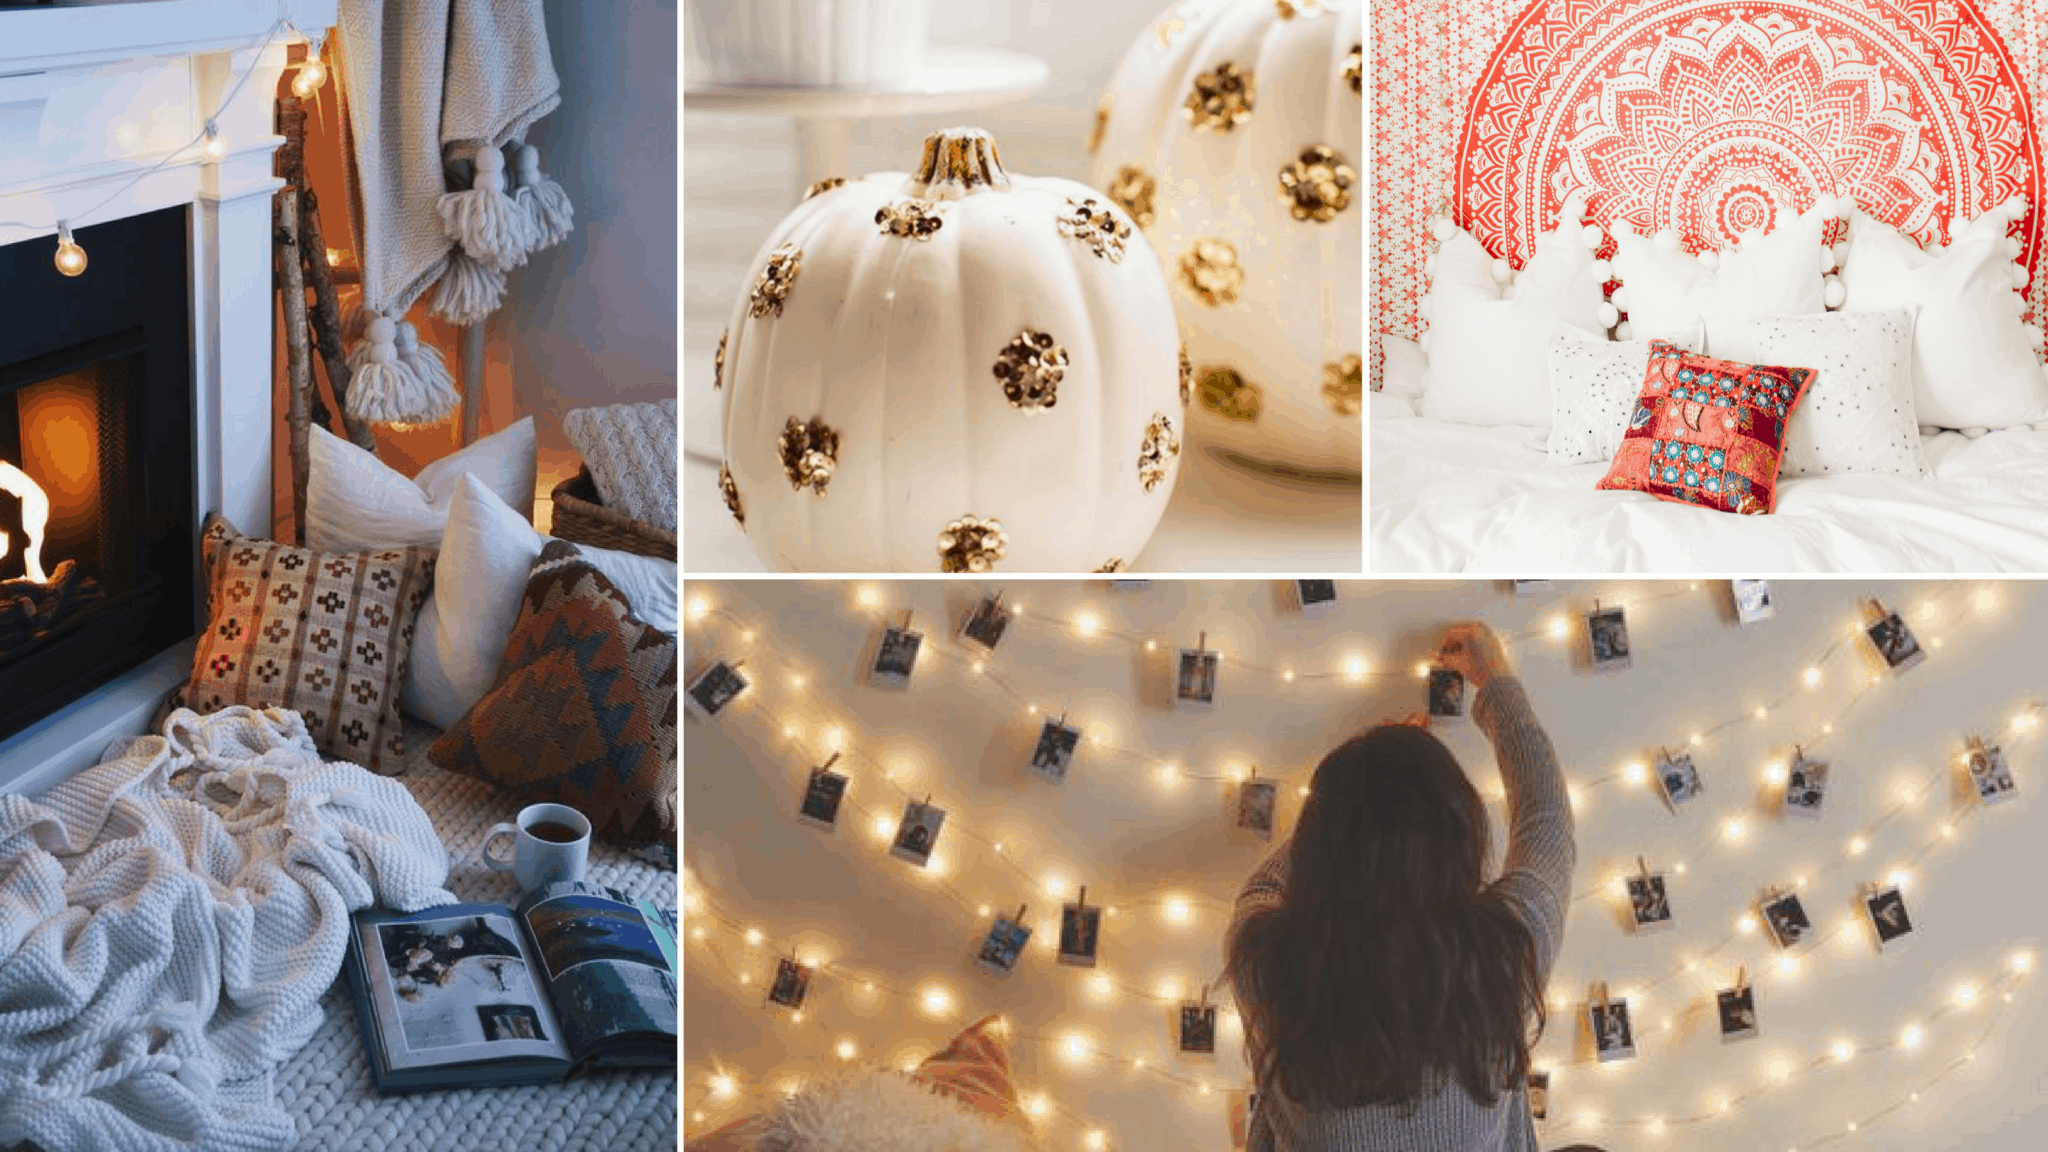 18 WAYS TO MAKE YOUR BEDROOM FEEL COZY THIS FALL